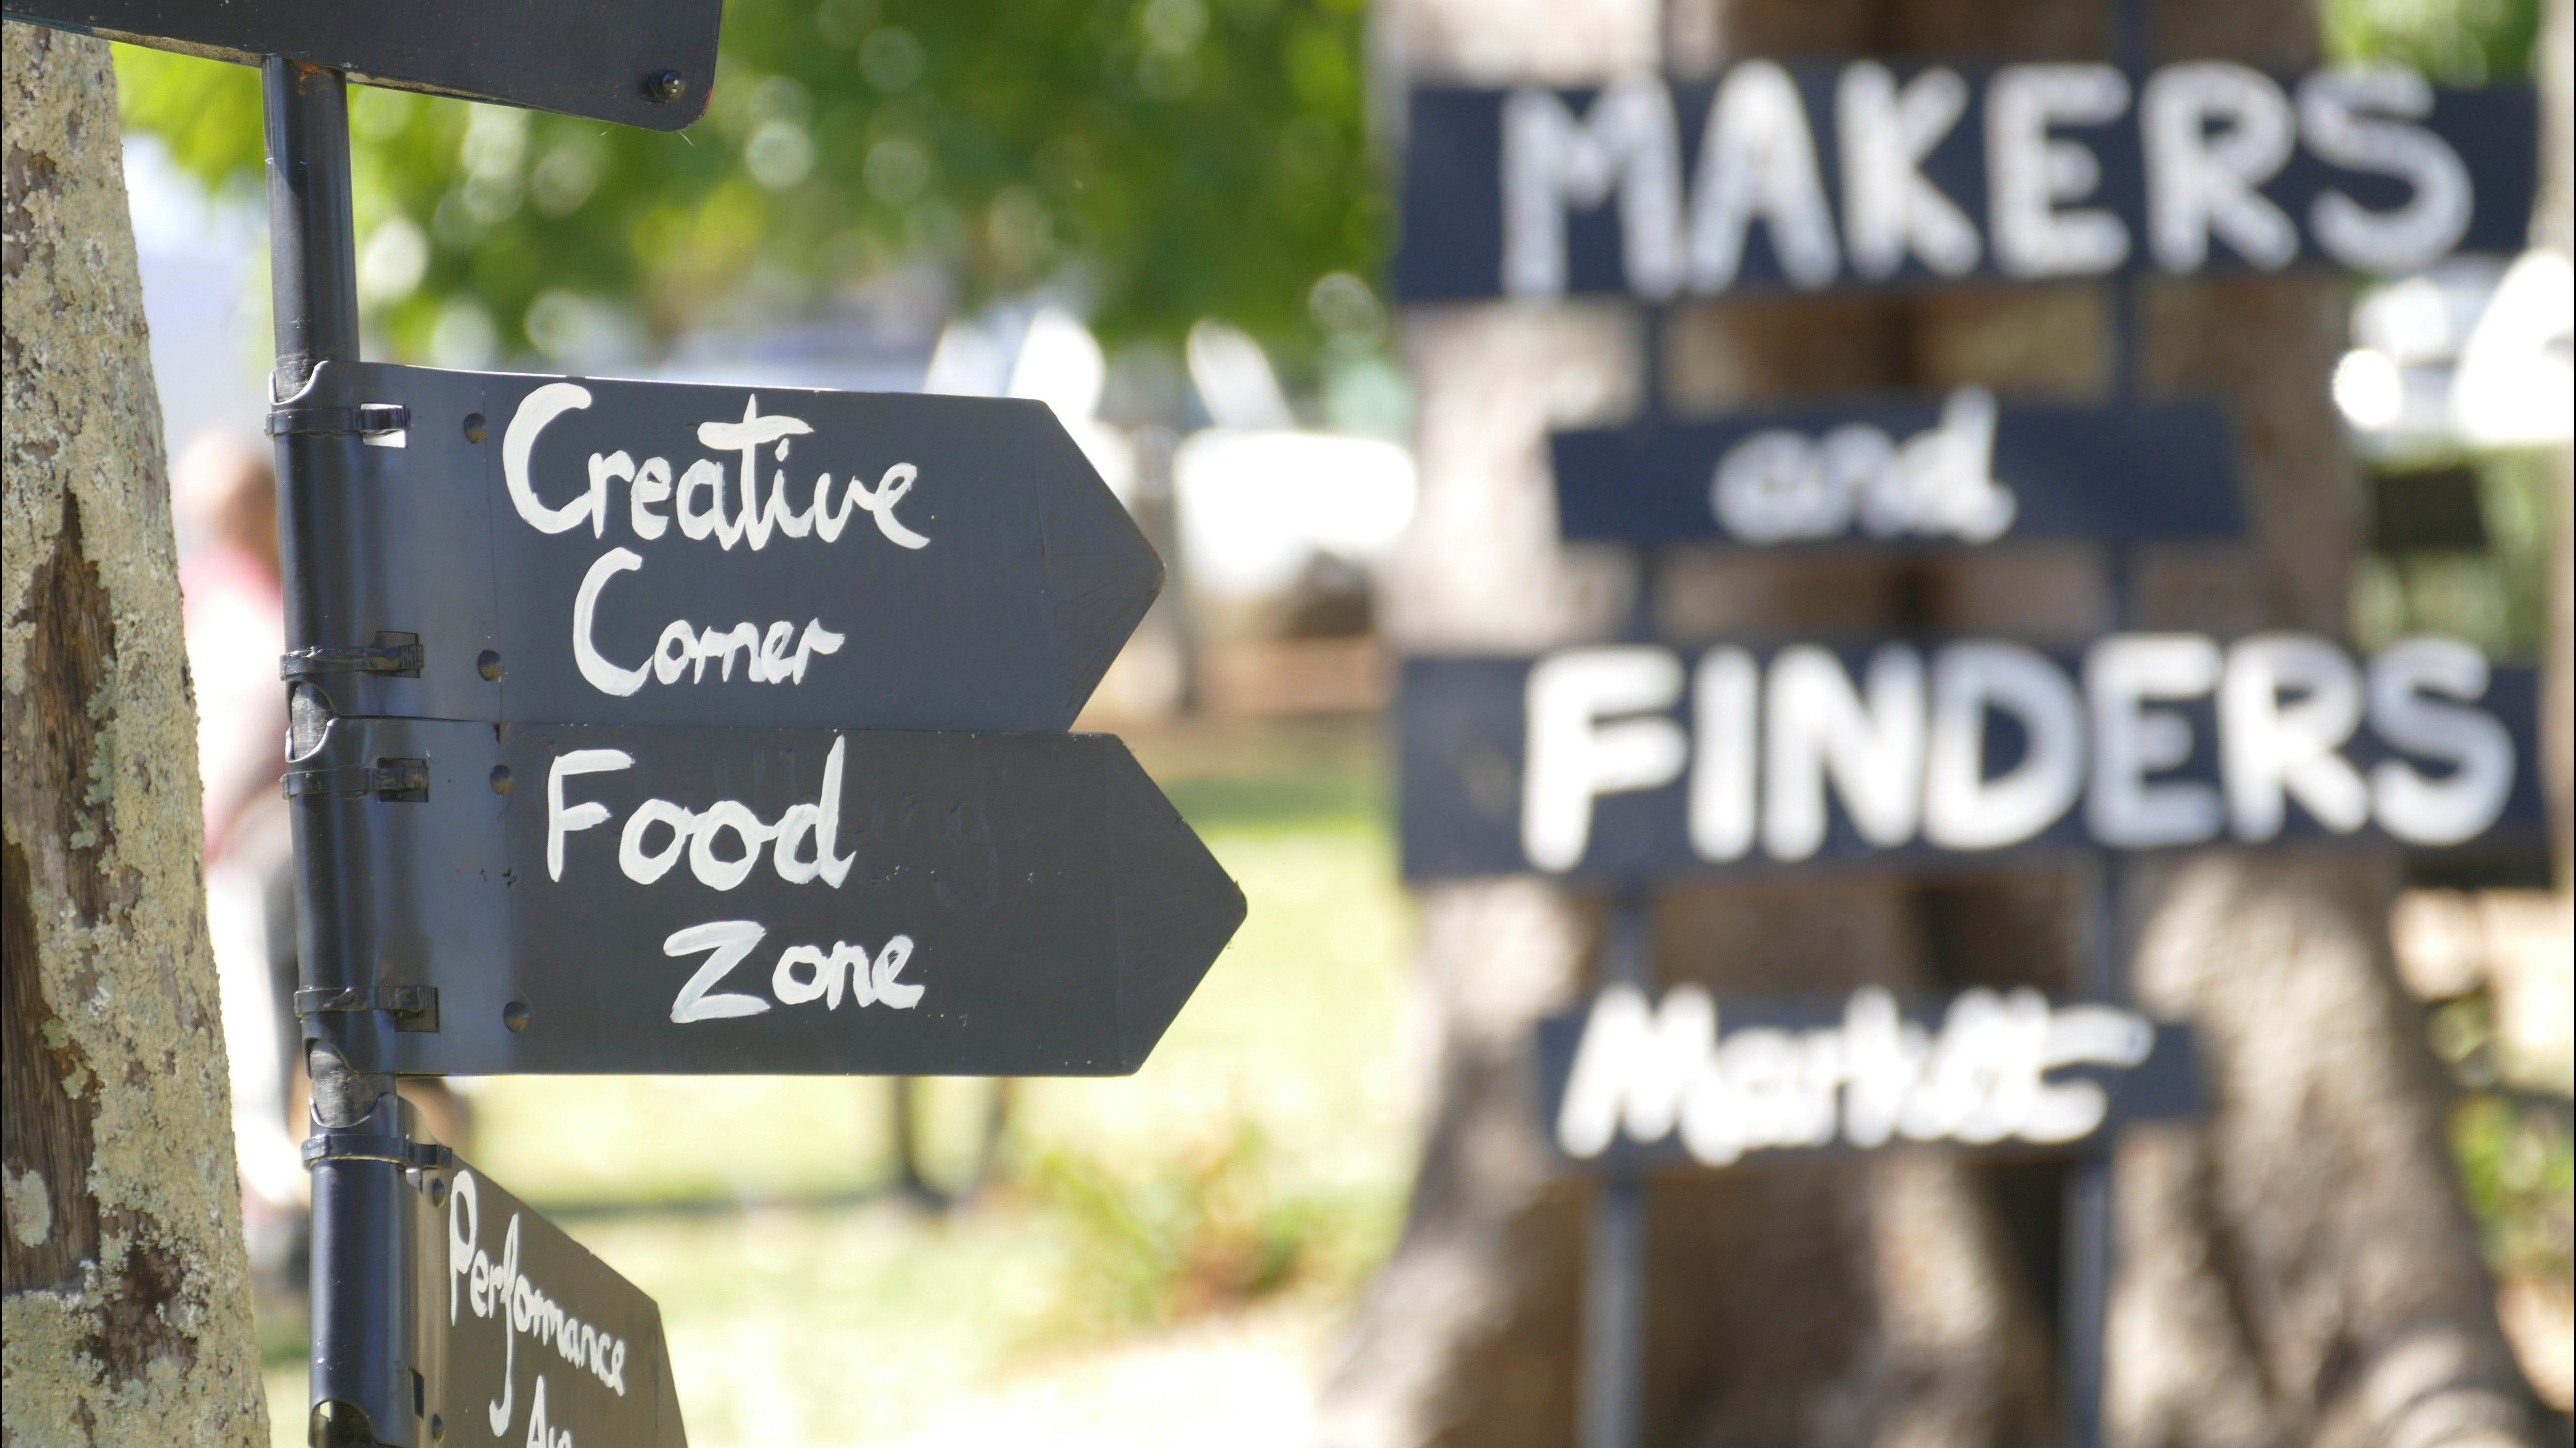 Makers and Finders Market Murwillumbah - Byron Bay Accommodations